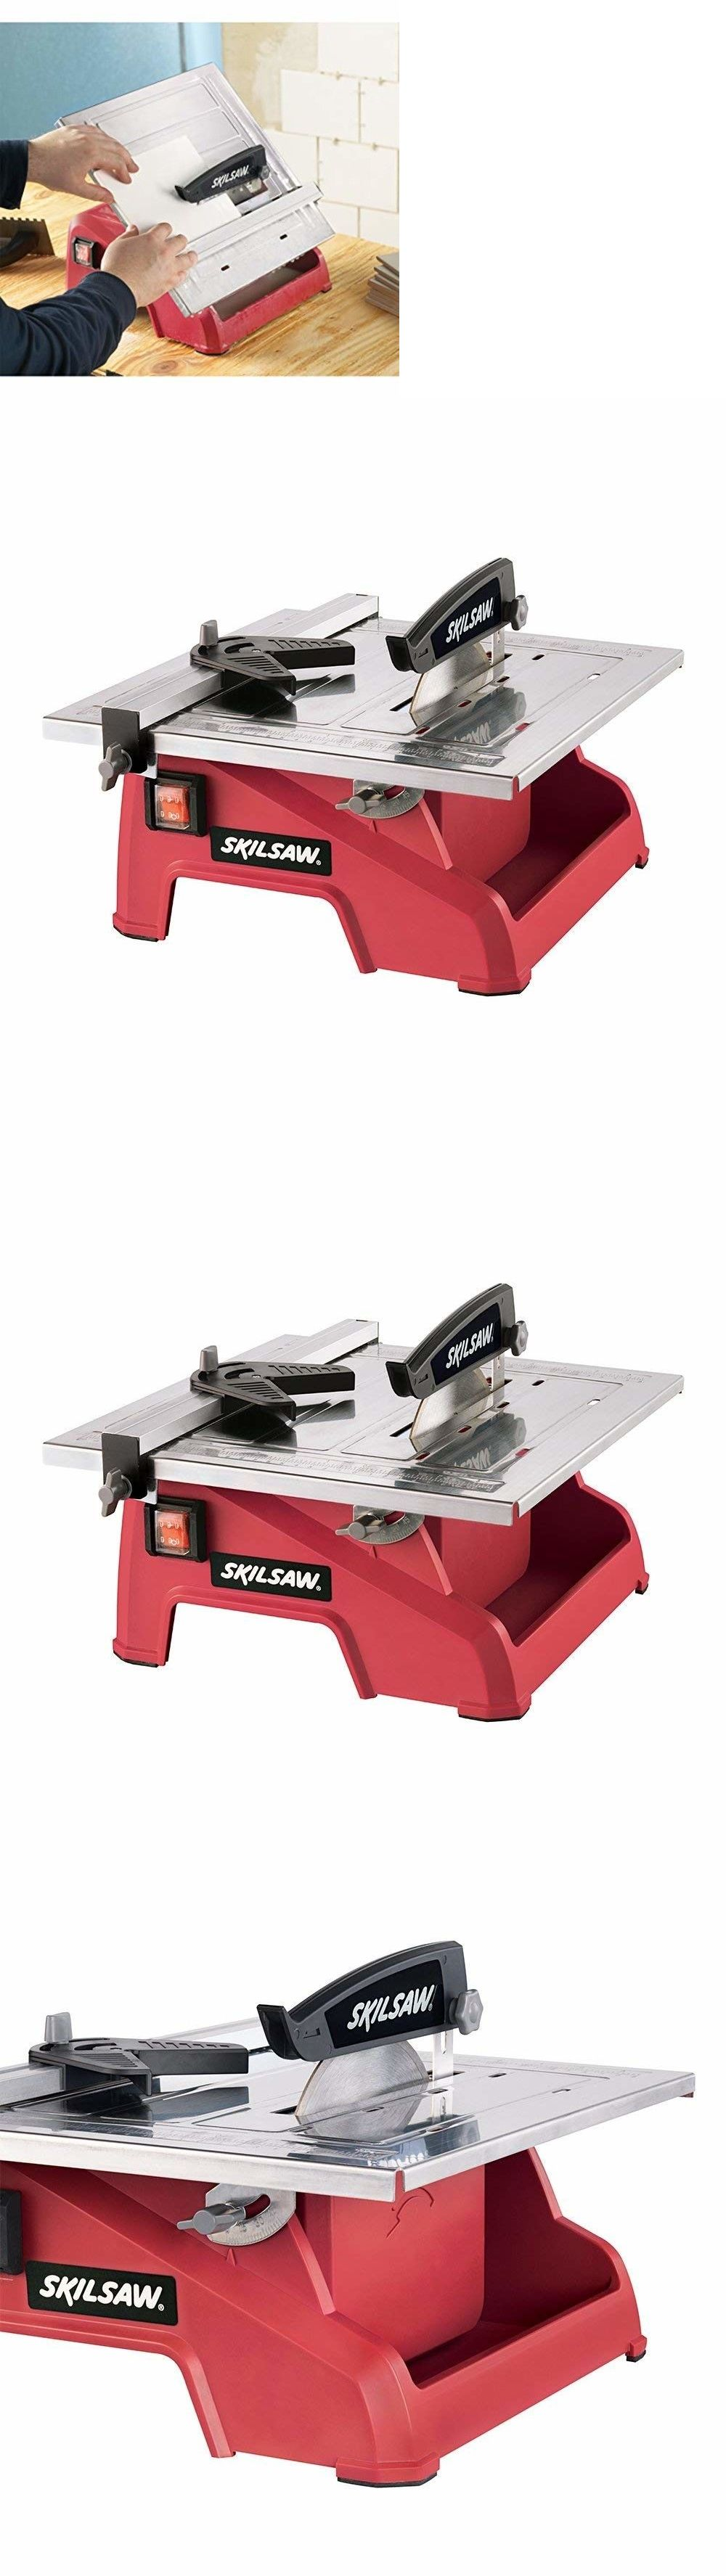 Tile Saws 122836 Skil 3540 02 7 Inch Wet Tile Saw Buy It Now Only 103 75 On Ebay Tile Saw Tile Saws Skil